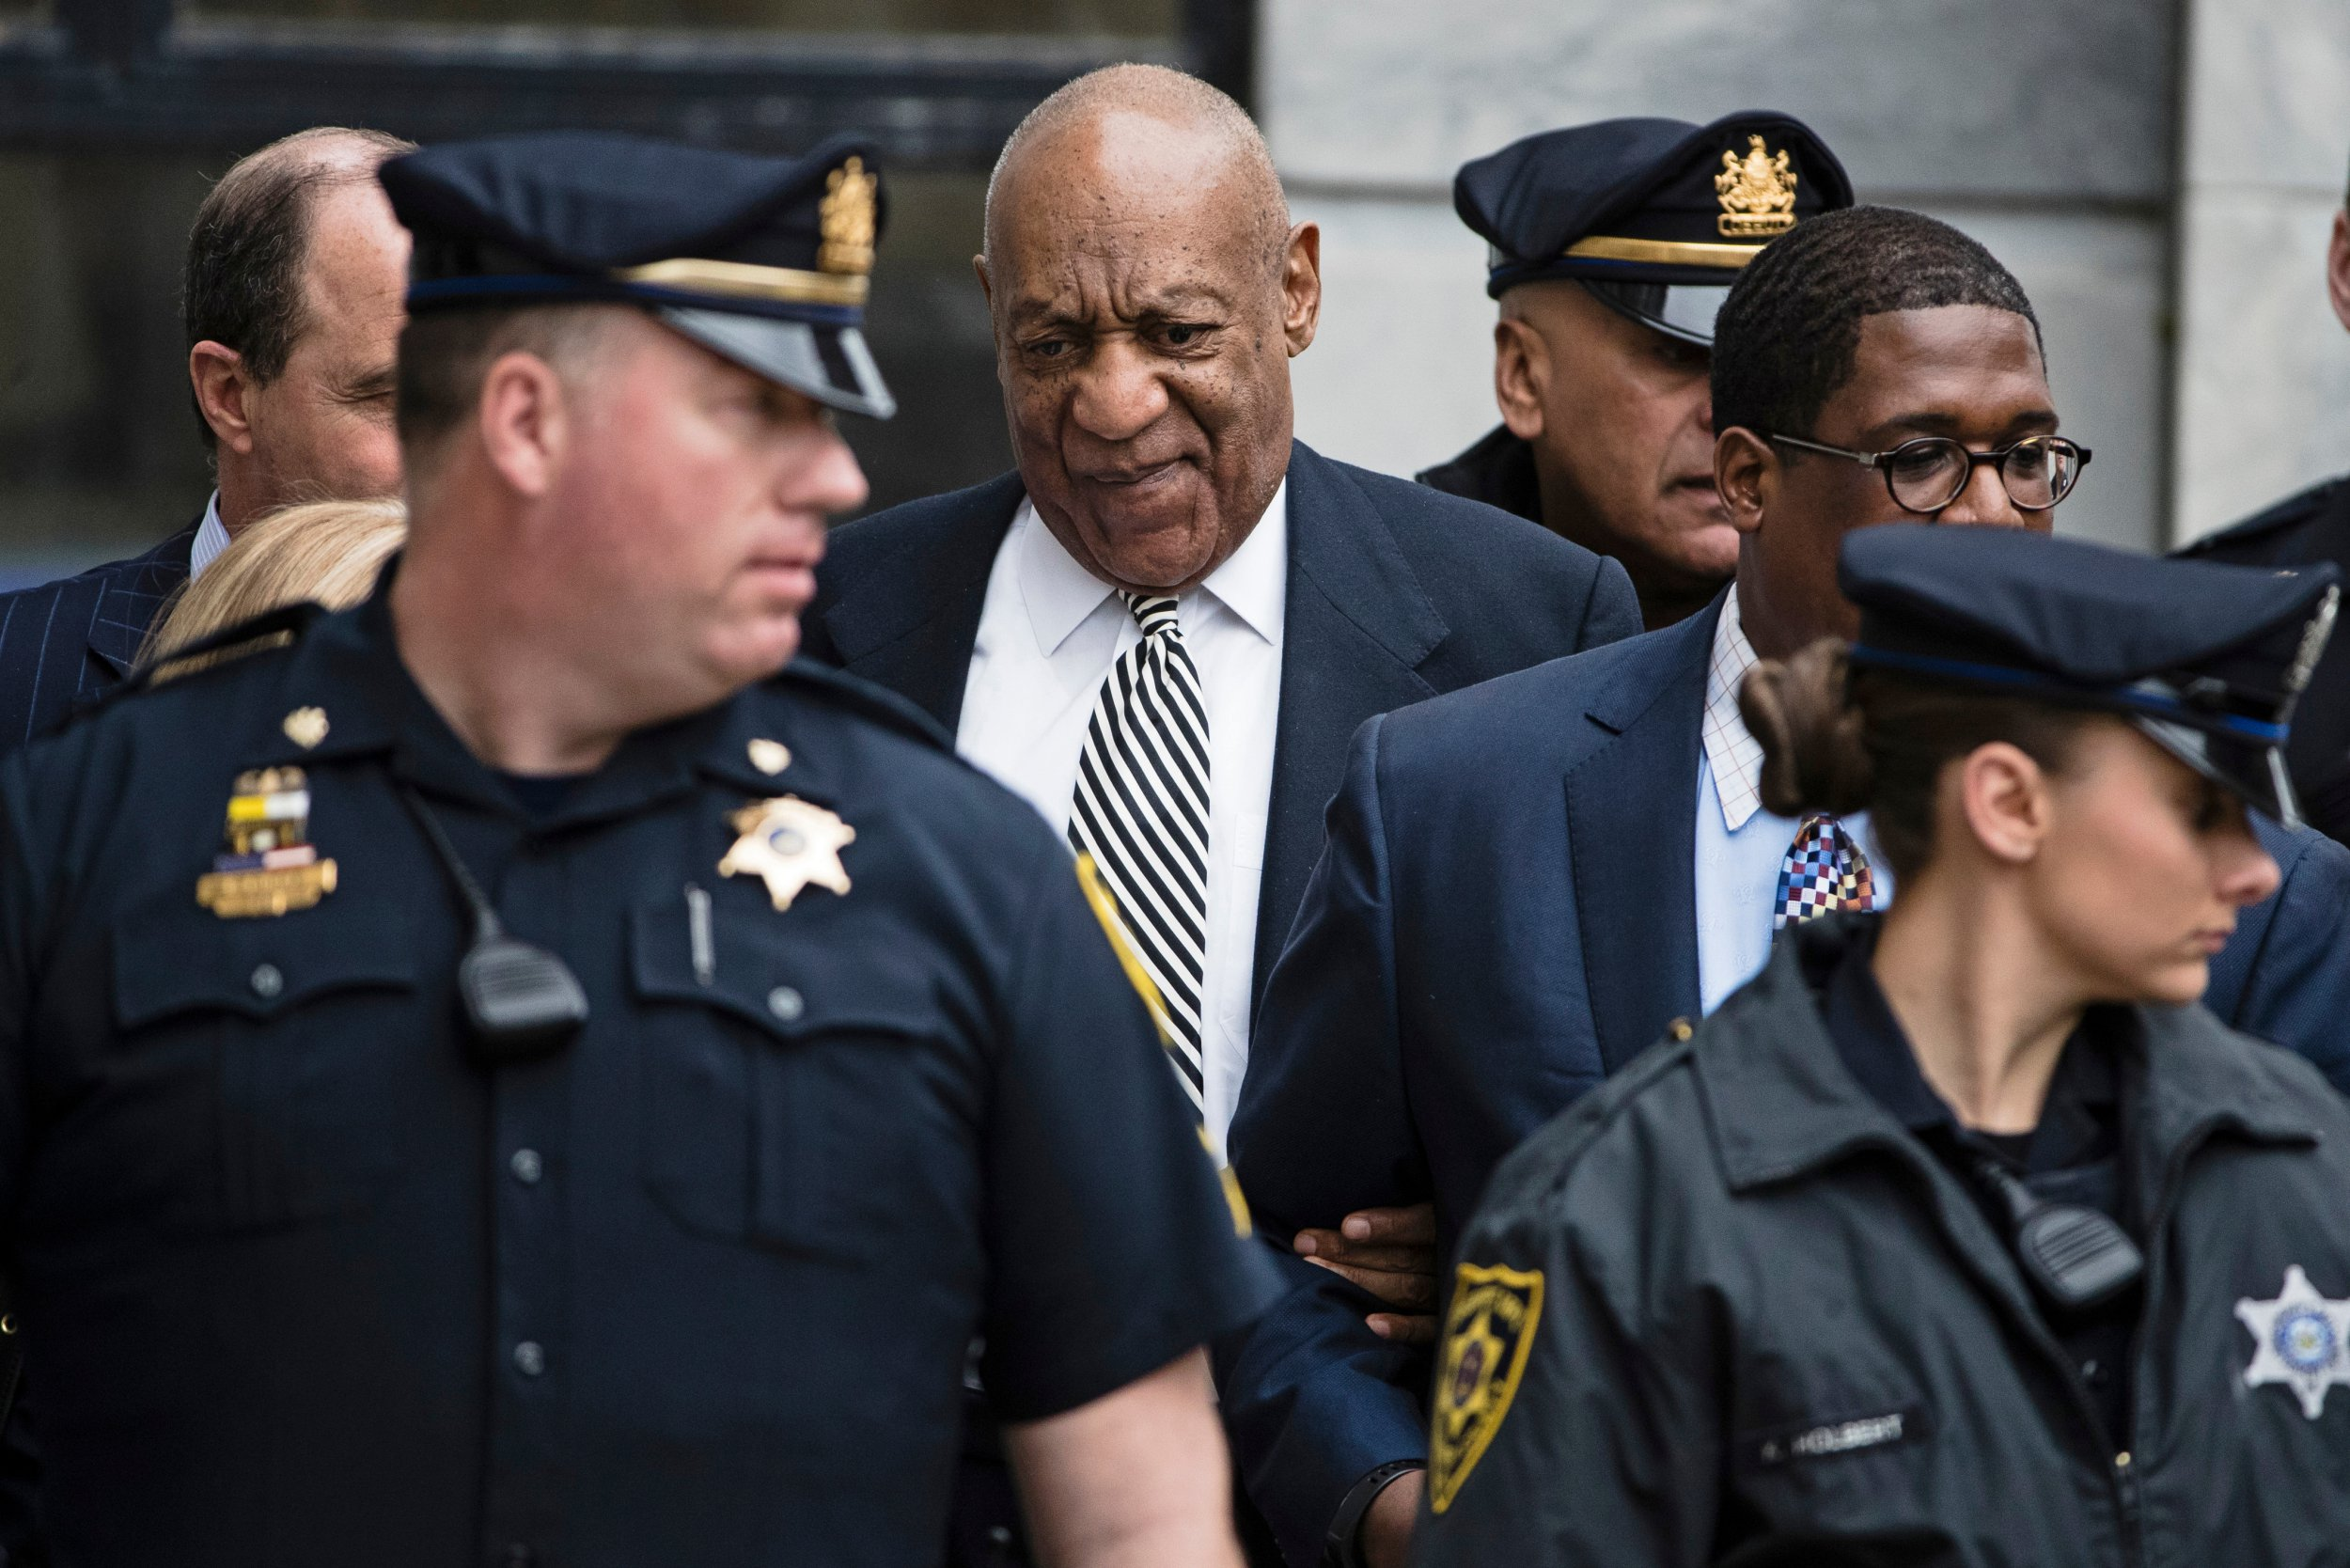 Extra security measures to be taken at Bill Cosby sentencing 'for his own protection'